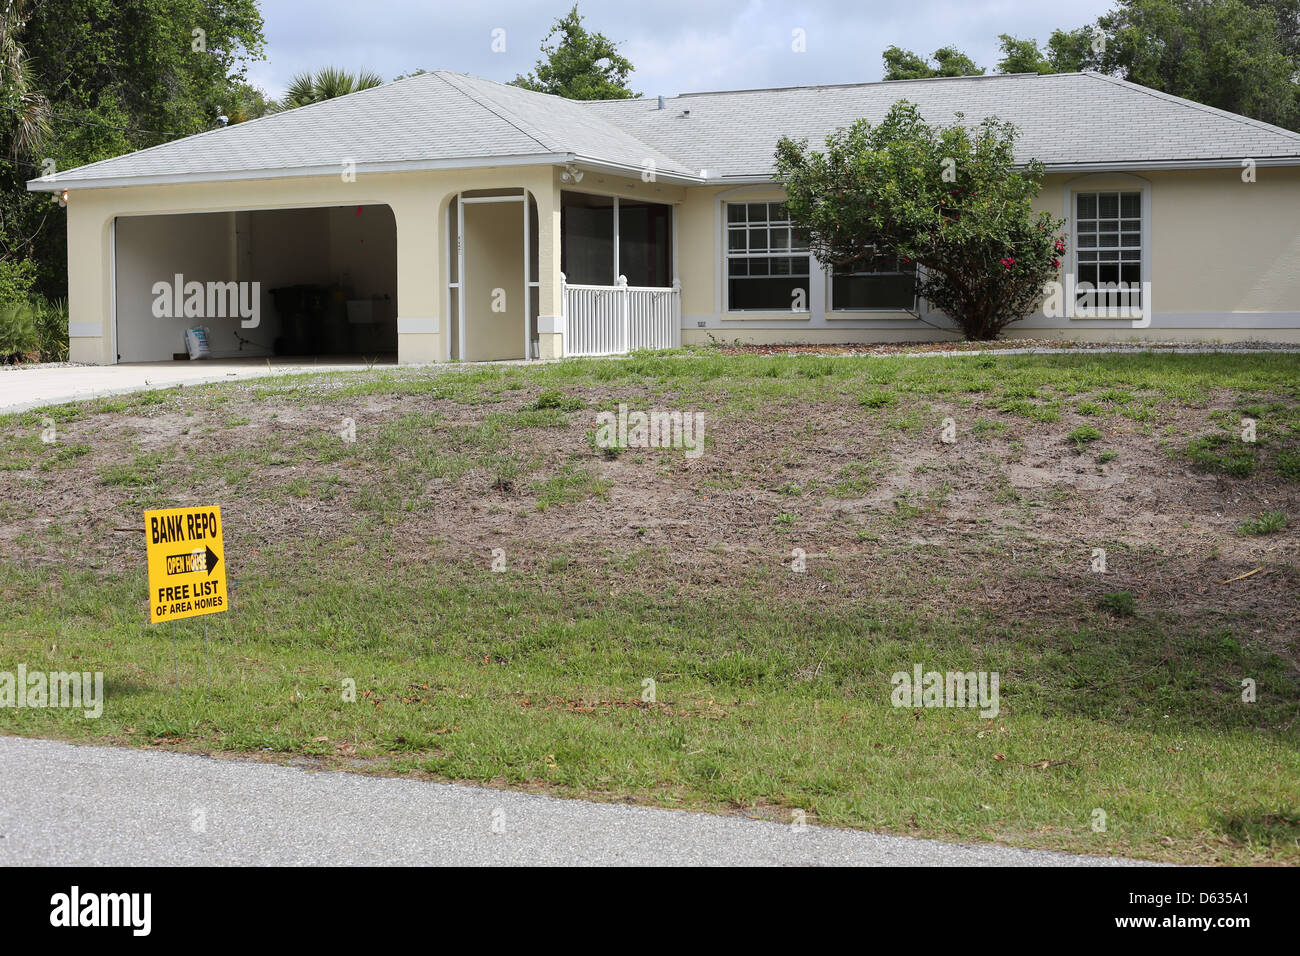 A Repo Repossessed Bank Owned House Home For Sale In Florida In The USA    Stock